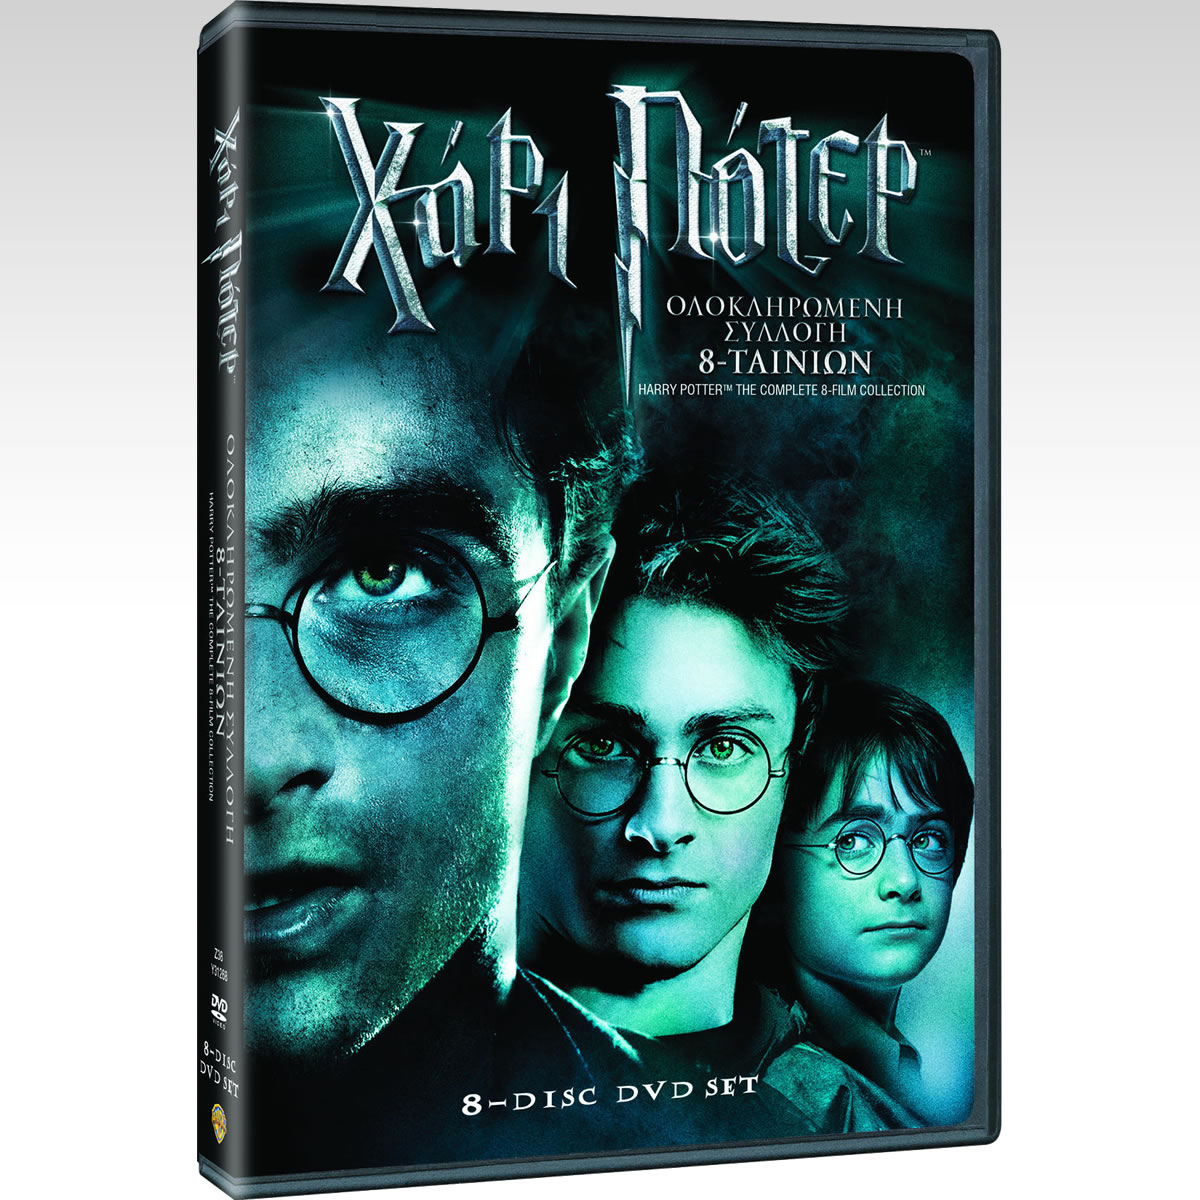 HARRY POTTER THE COMPLETE 8 FILM COLLECTION - ���� �����: ������������ ������� 8 ������� [��������] (8 DVDs)